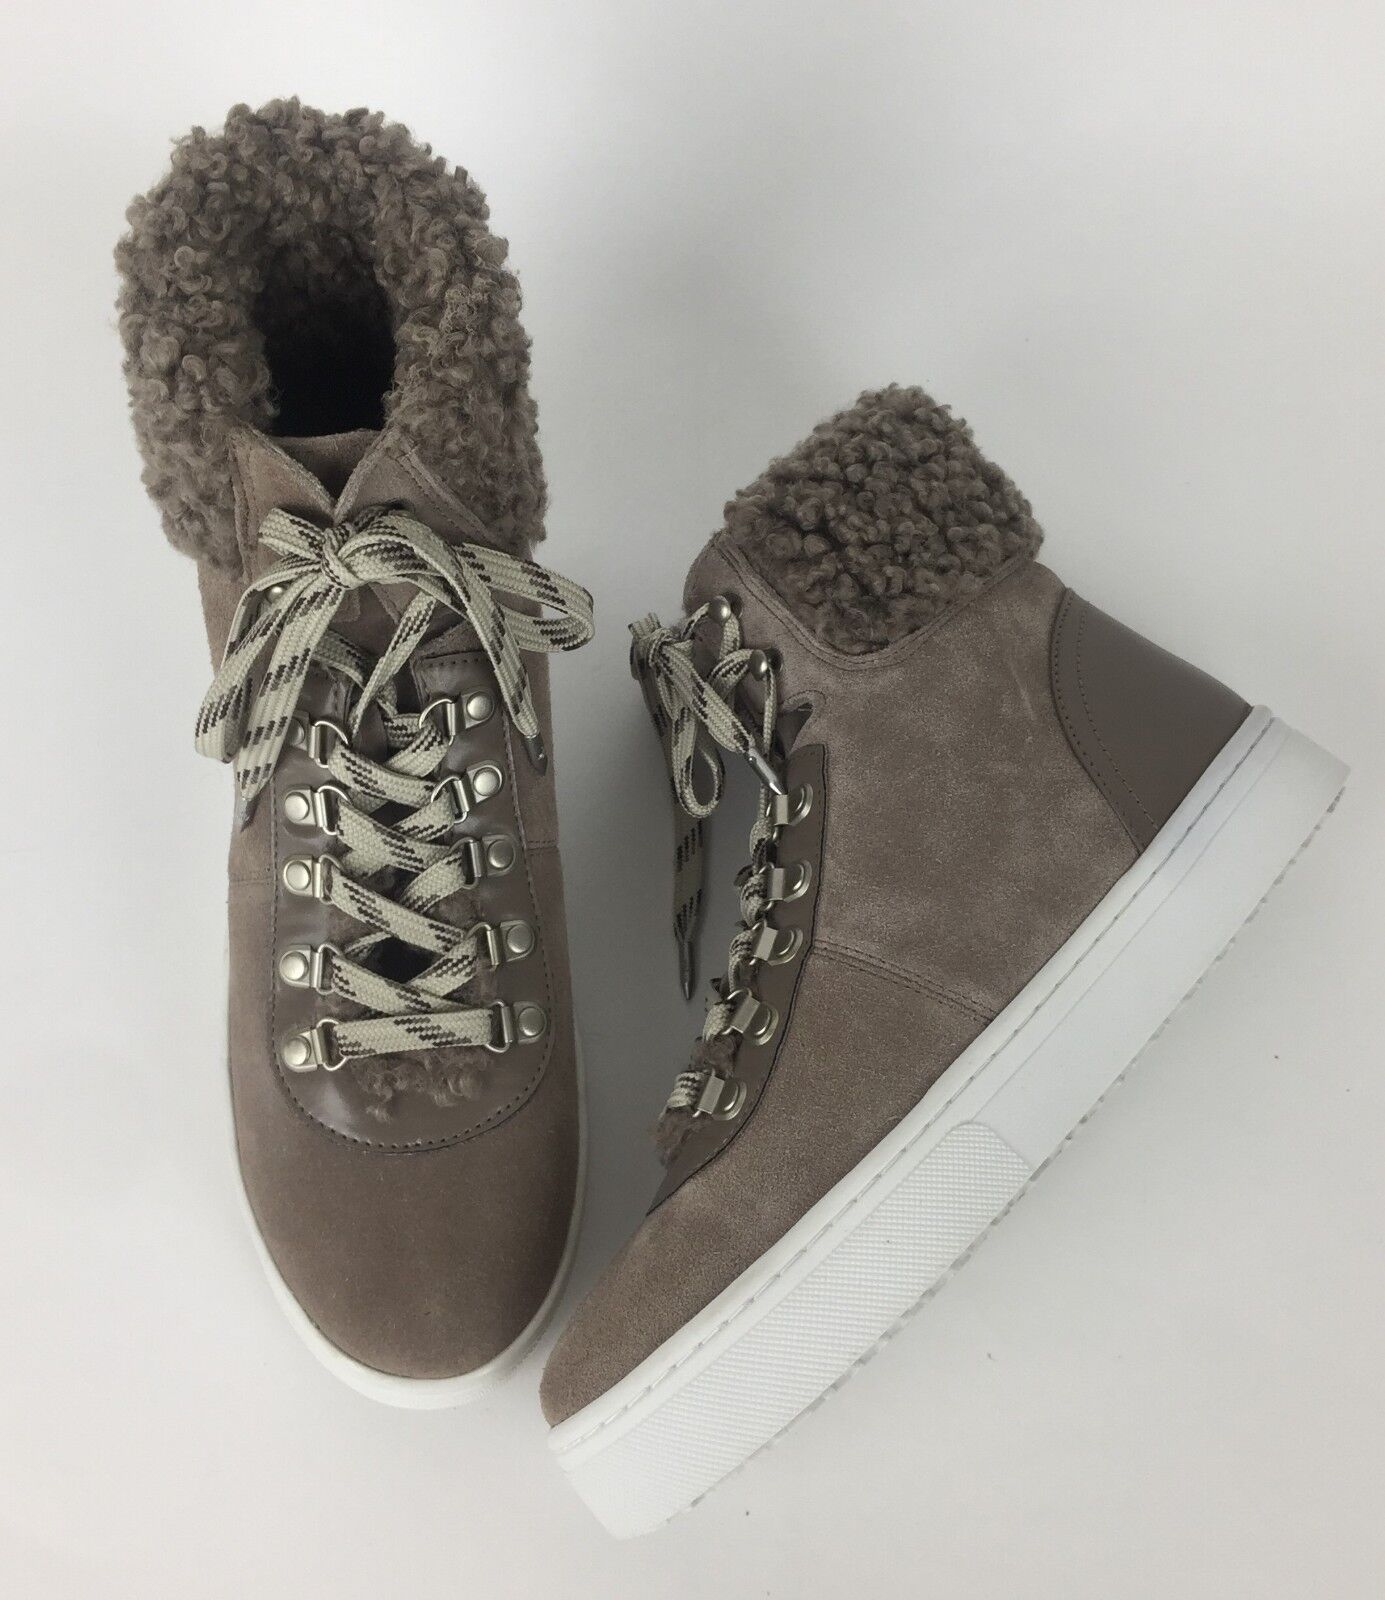 Sam Edelman Luther High Top Sneaker Womens 8.5 Faux Shearling Suede Putty New